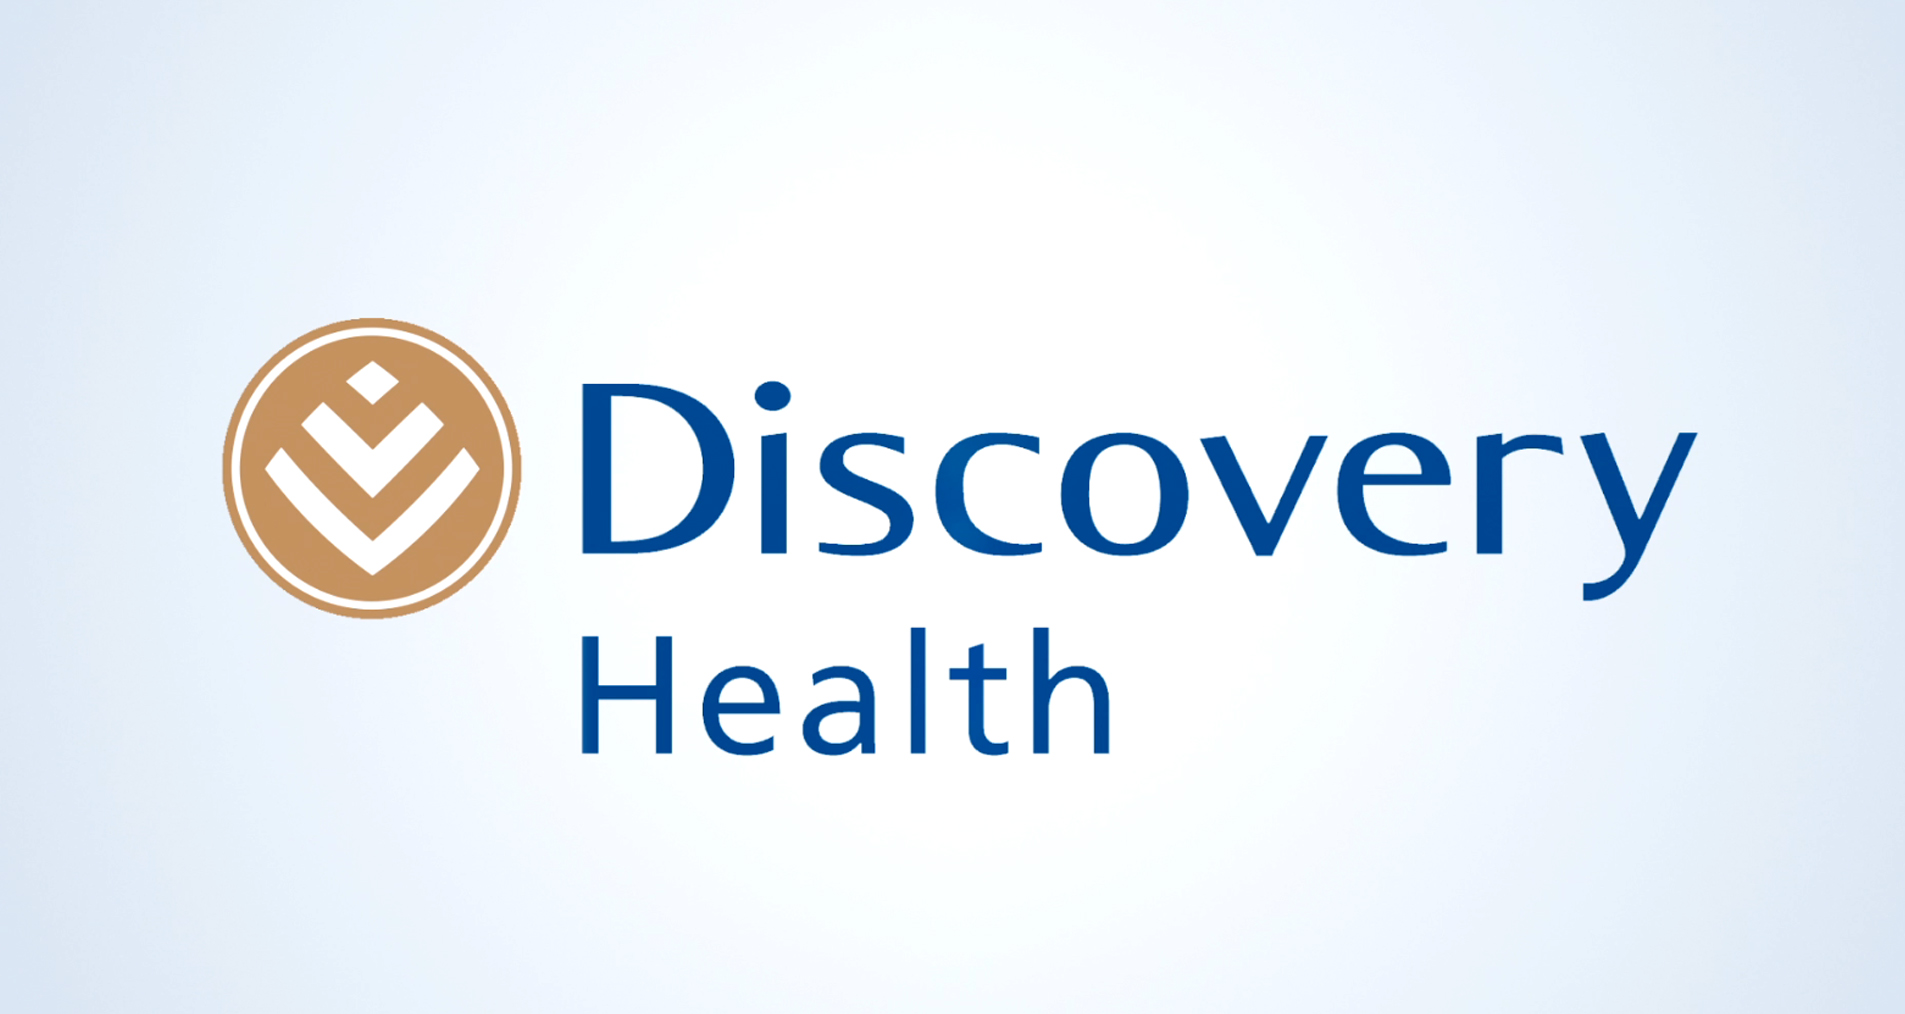 Discovery Health Logo Animation